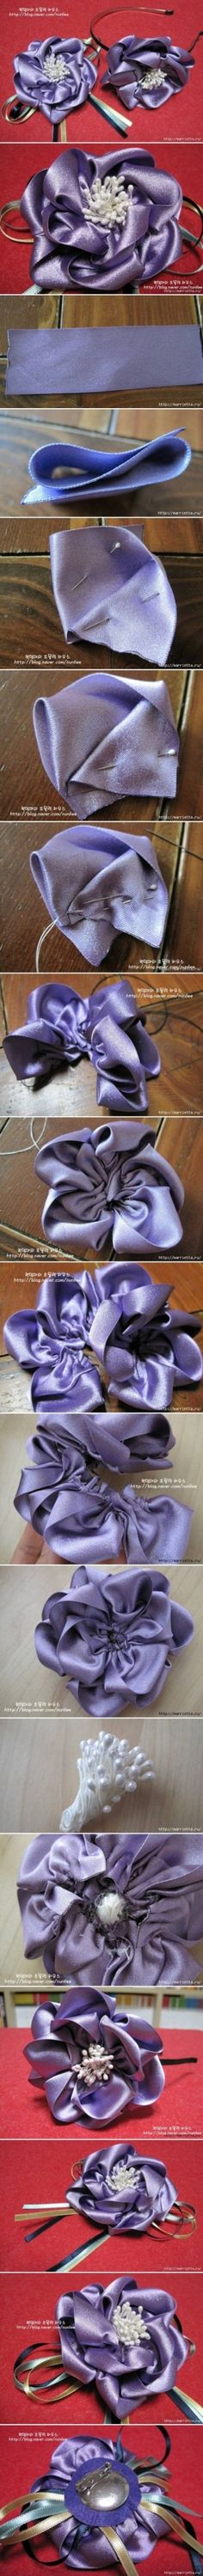 How to make Satin Ribbon Flower Brooch bouquet step by step DIY tutorial instructions, How to, how to do, diy instructions, crafts, do it ys by Mary Smith fSesz